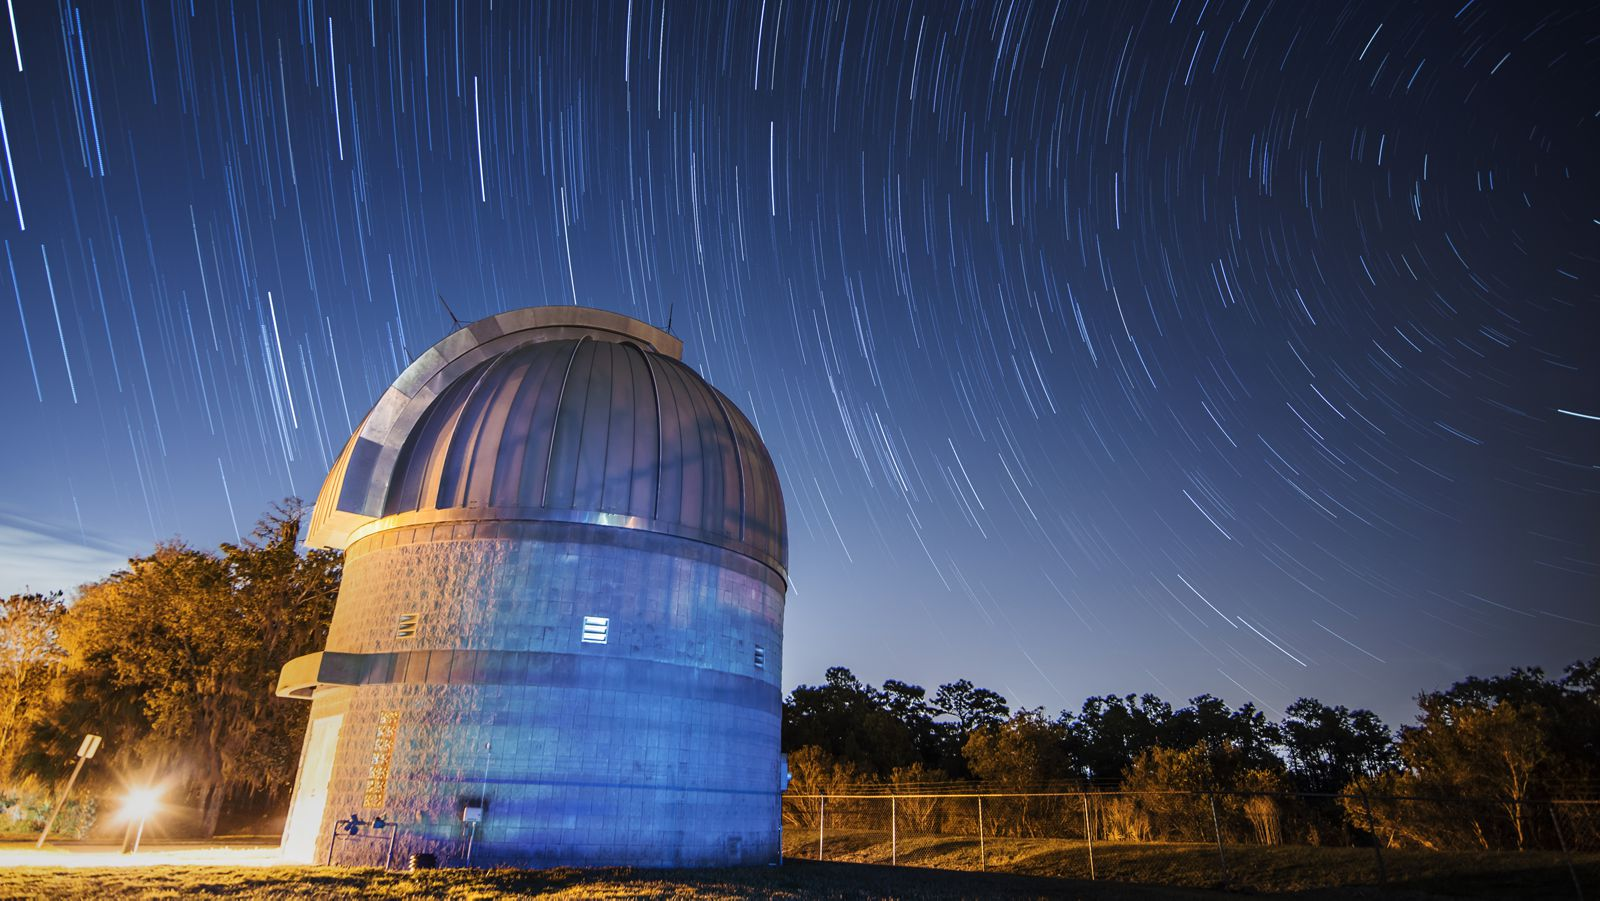 Time lapse photo of the UCF Robinson Observatory